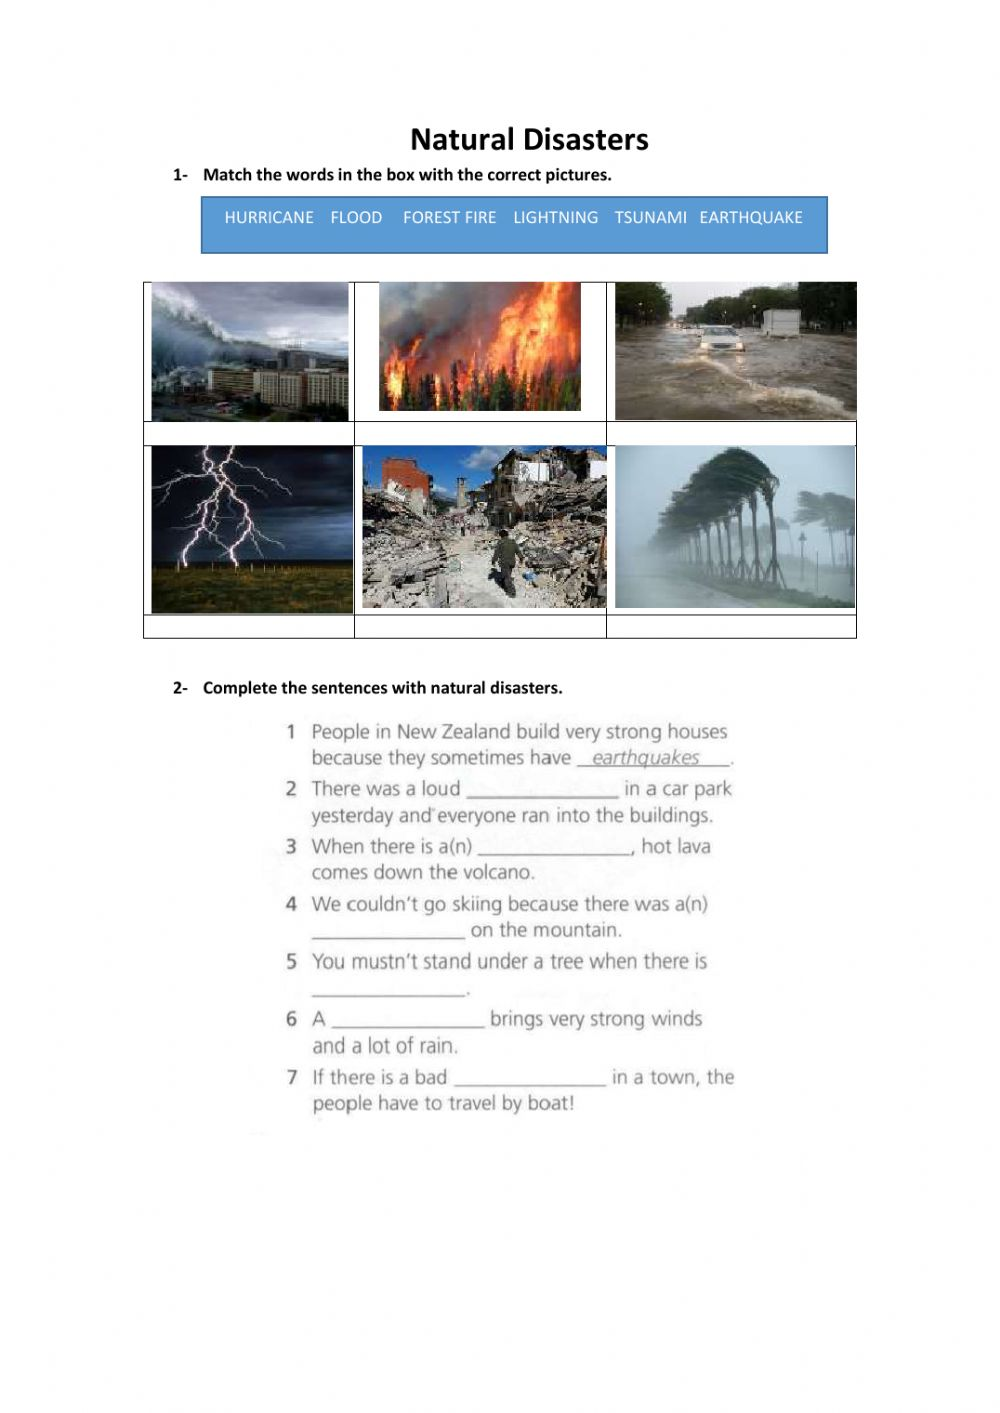 medium resolution of Natural Disasters zsciencez exercise